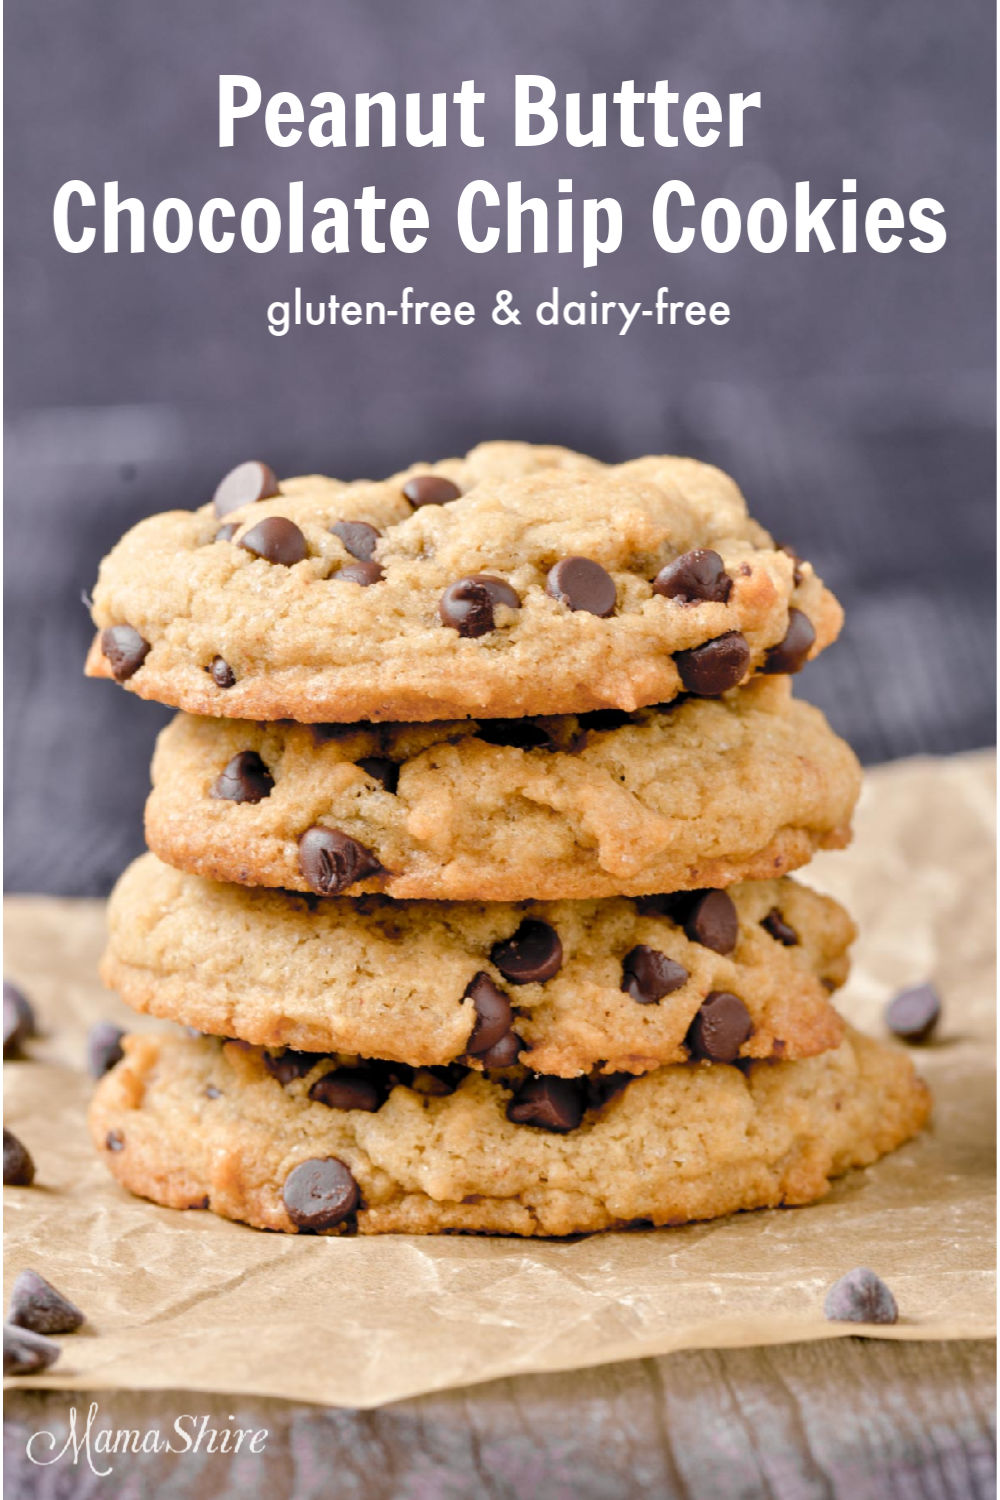 Gluten-free peanut butter chocolate chip cookies.